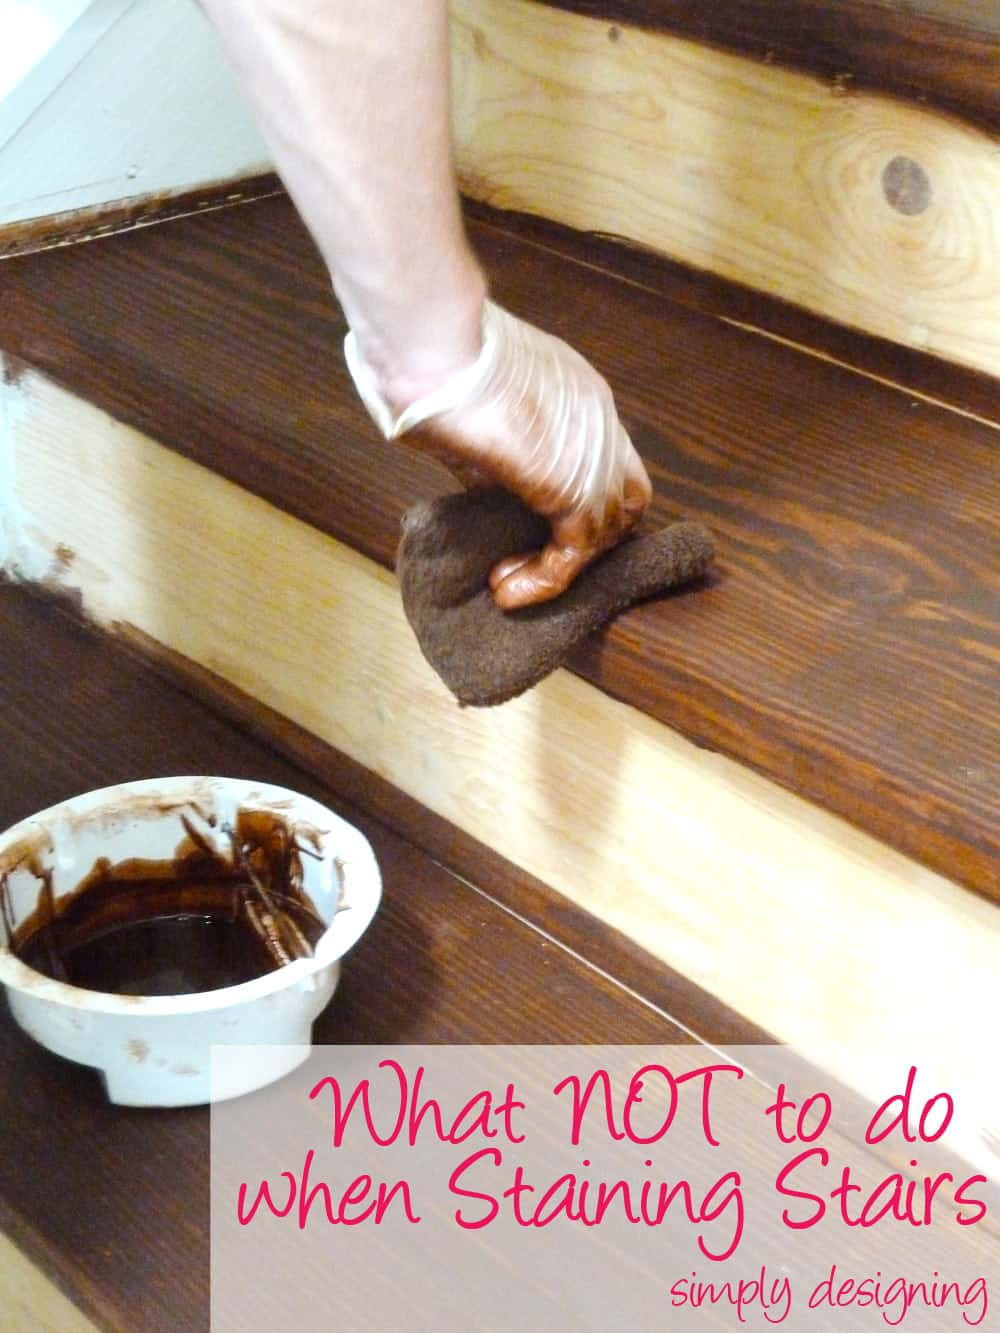 Here's what NOT to do when staining stairs in a staircase make-over - we learned the hard way so you don't have to.